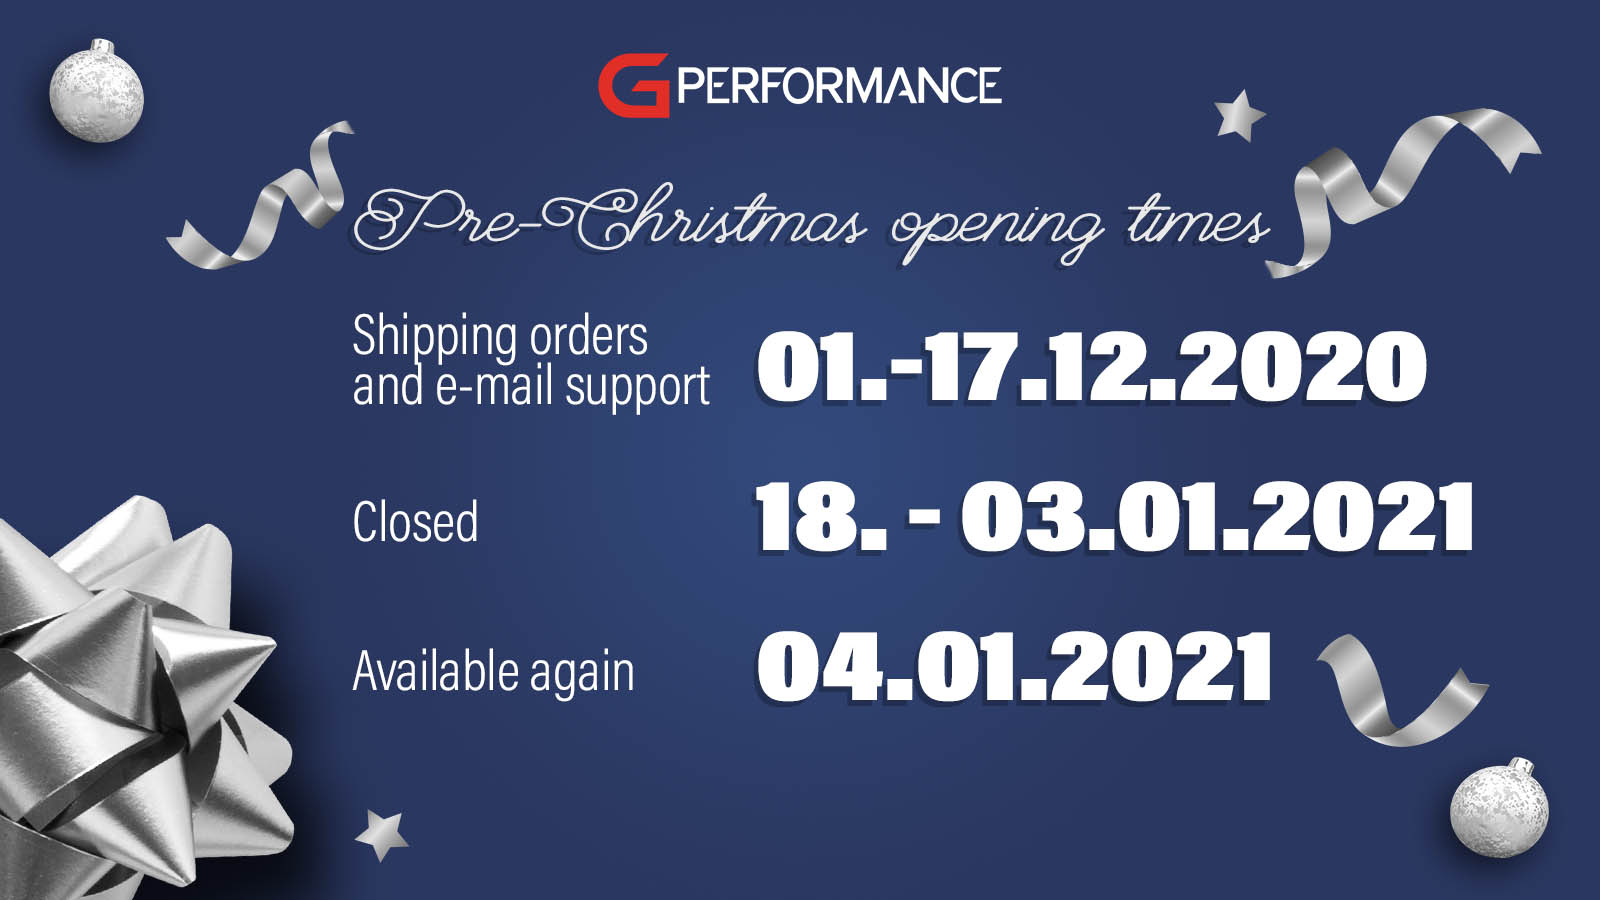 Christmas opening times - G-Performance